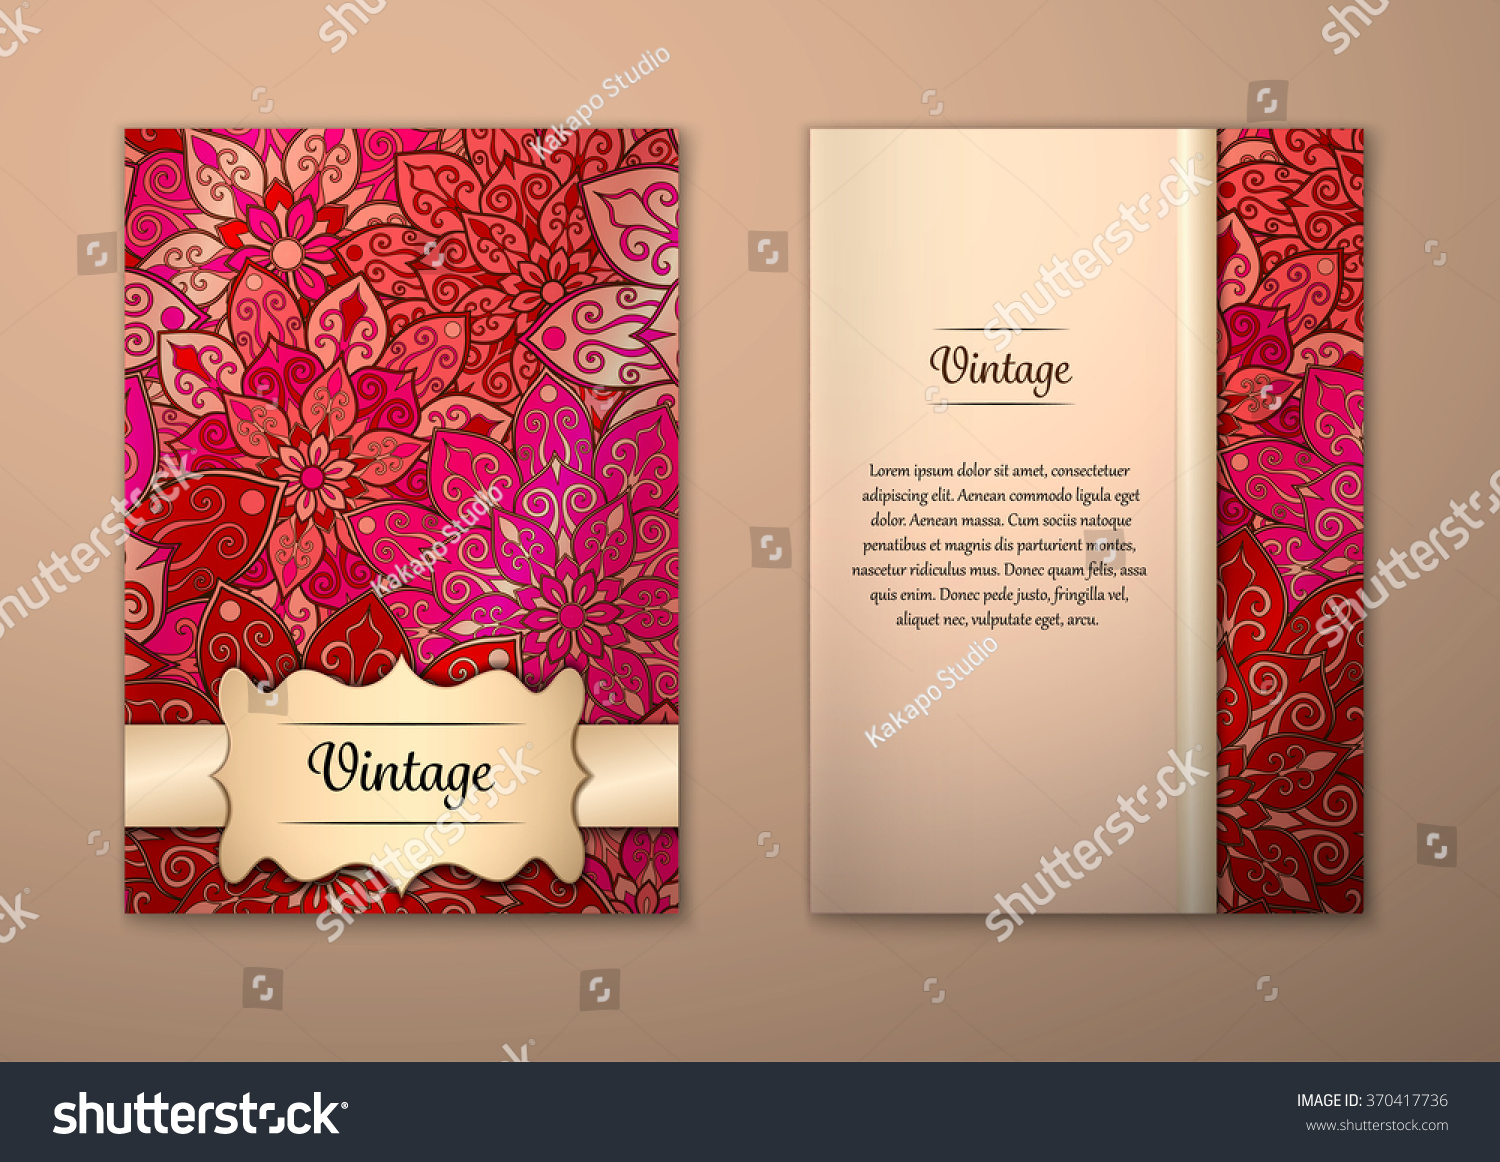 Royalty-free Vintage cards with Floral mandala… #370417736 Stock ...